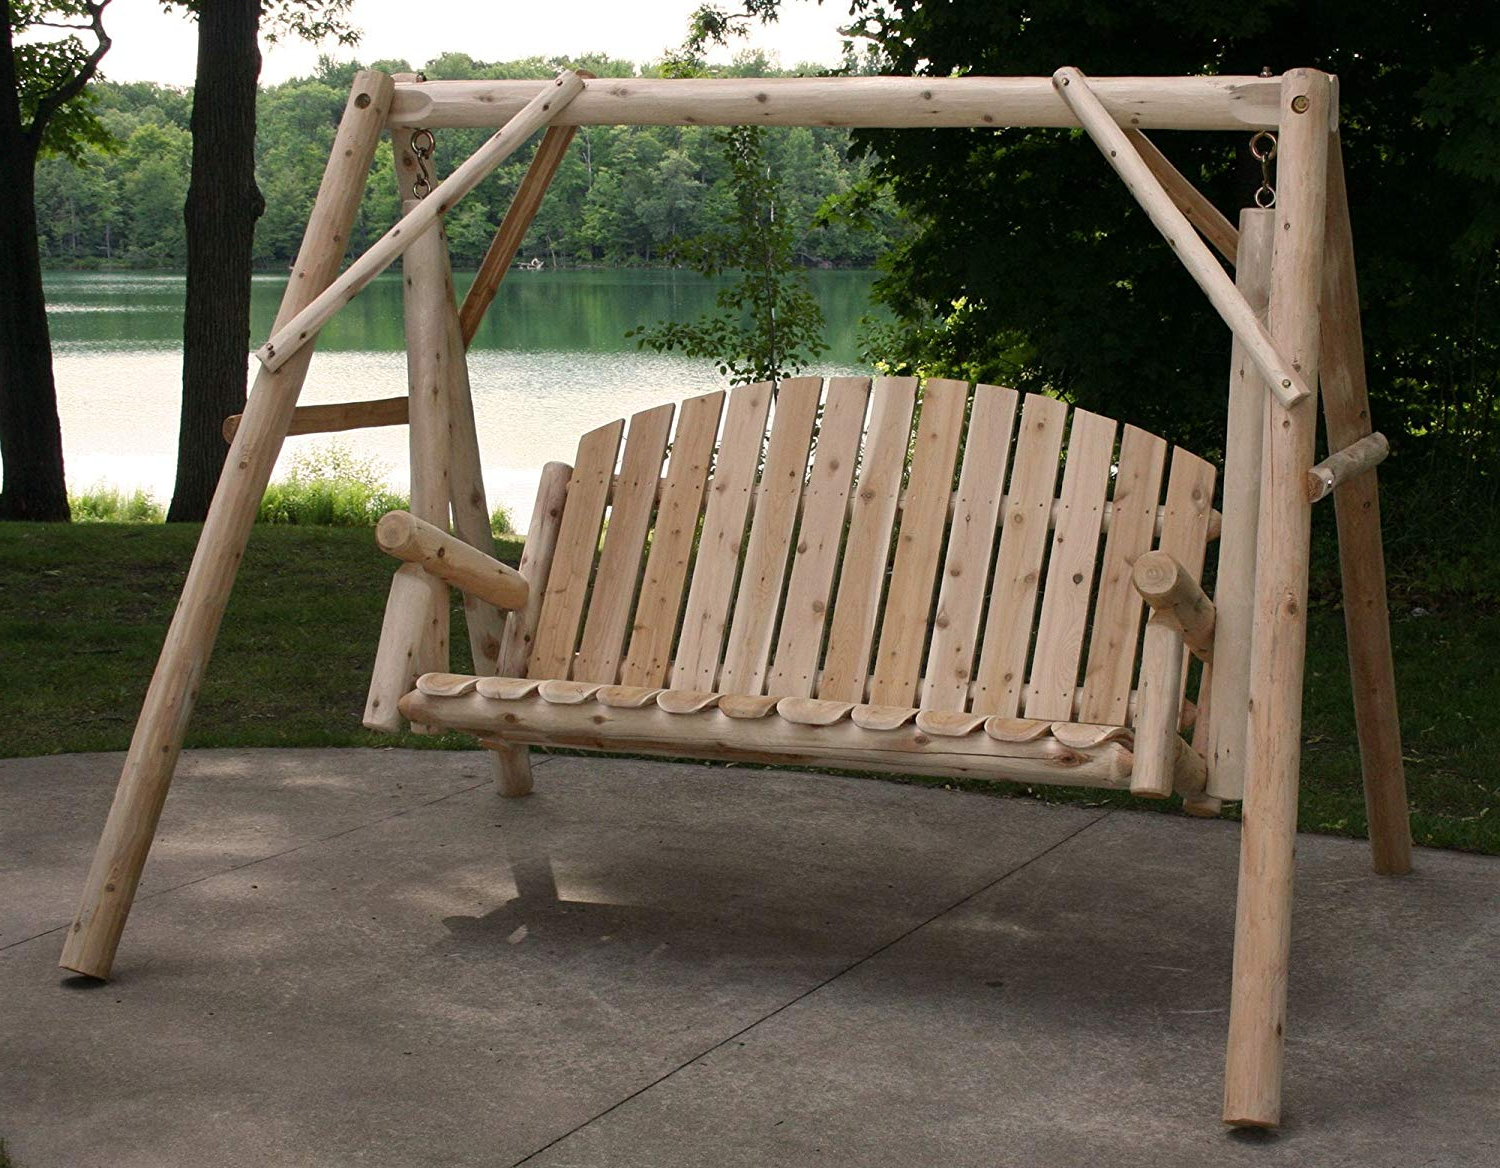 Lakeland Mills Country Garden Swing For Most Up To Date 3 Person Light Teak Oil Wood Outdoor Swings (View 14 of 30)